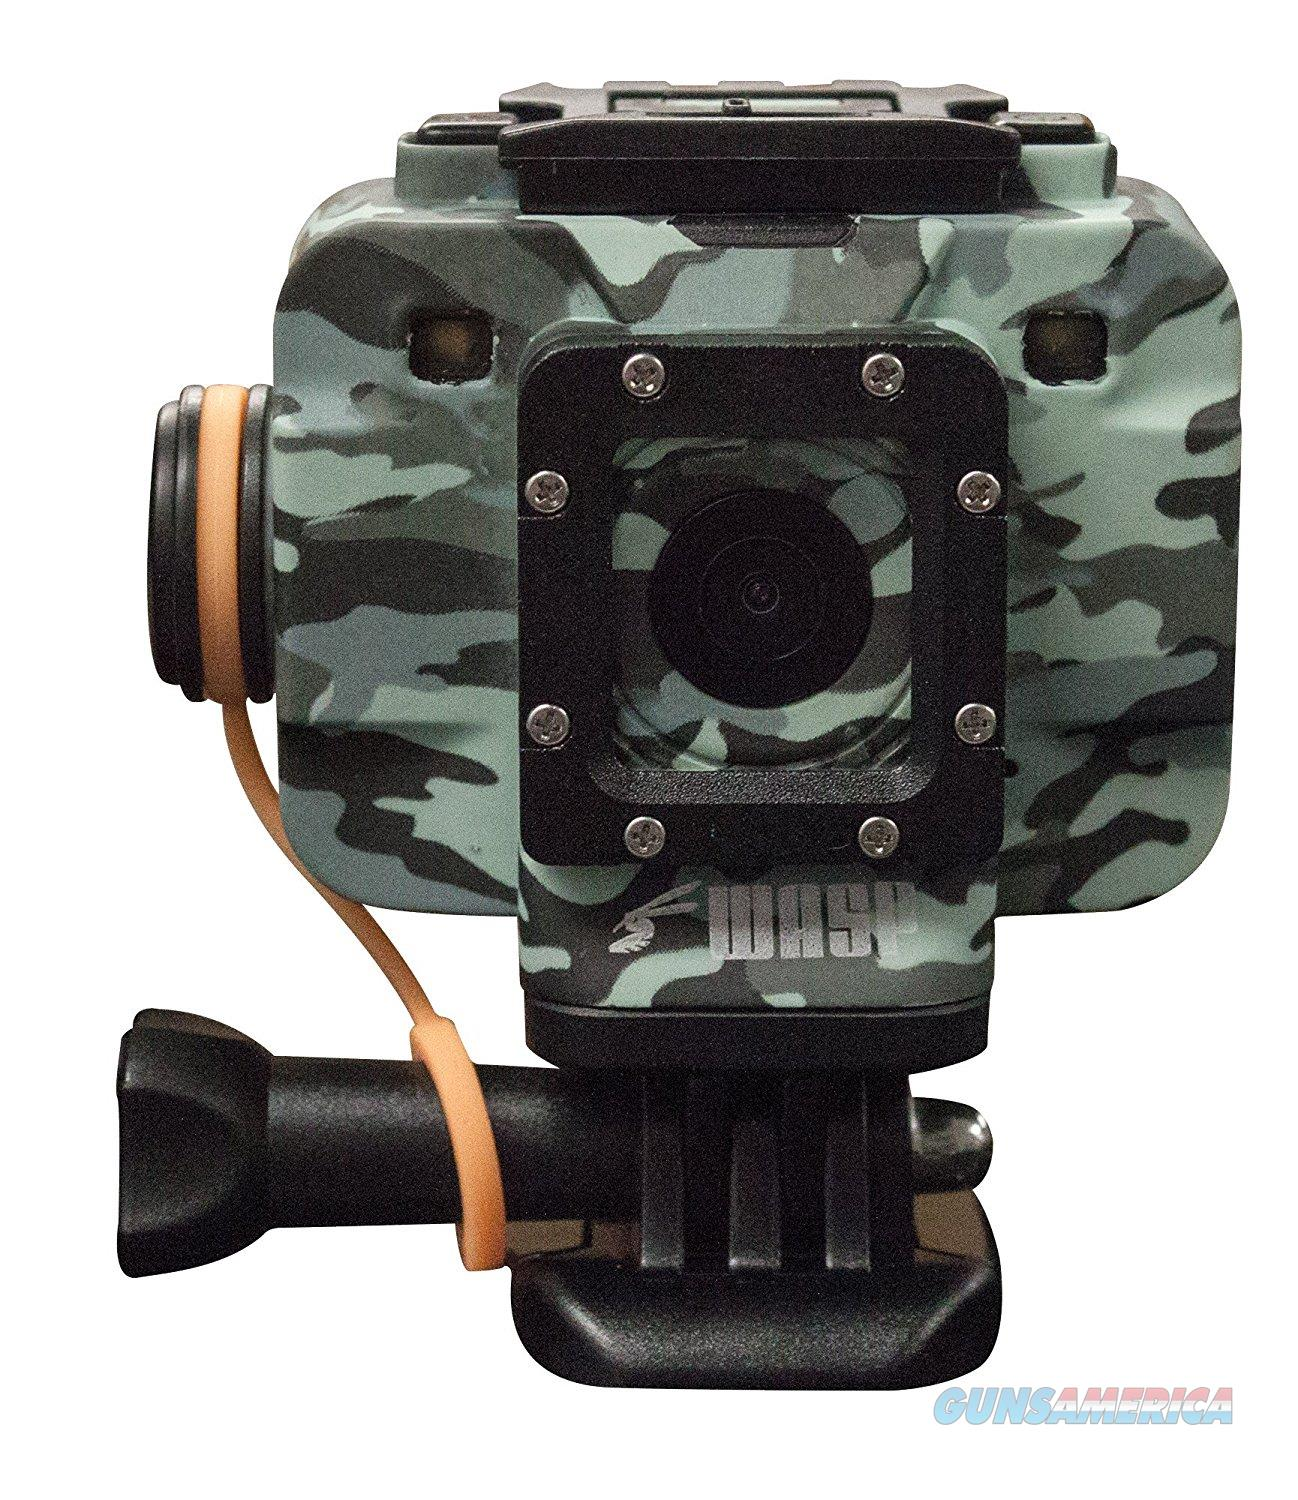 wasp cam camo action camera 9906 for sale